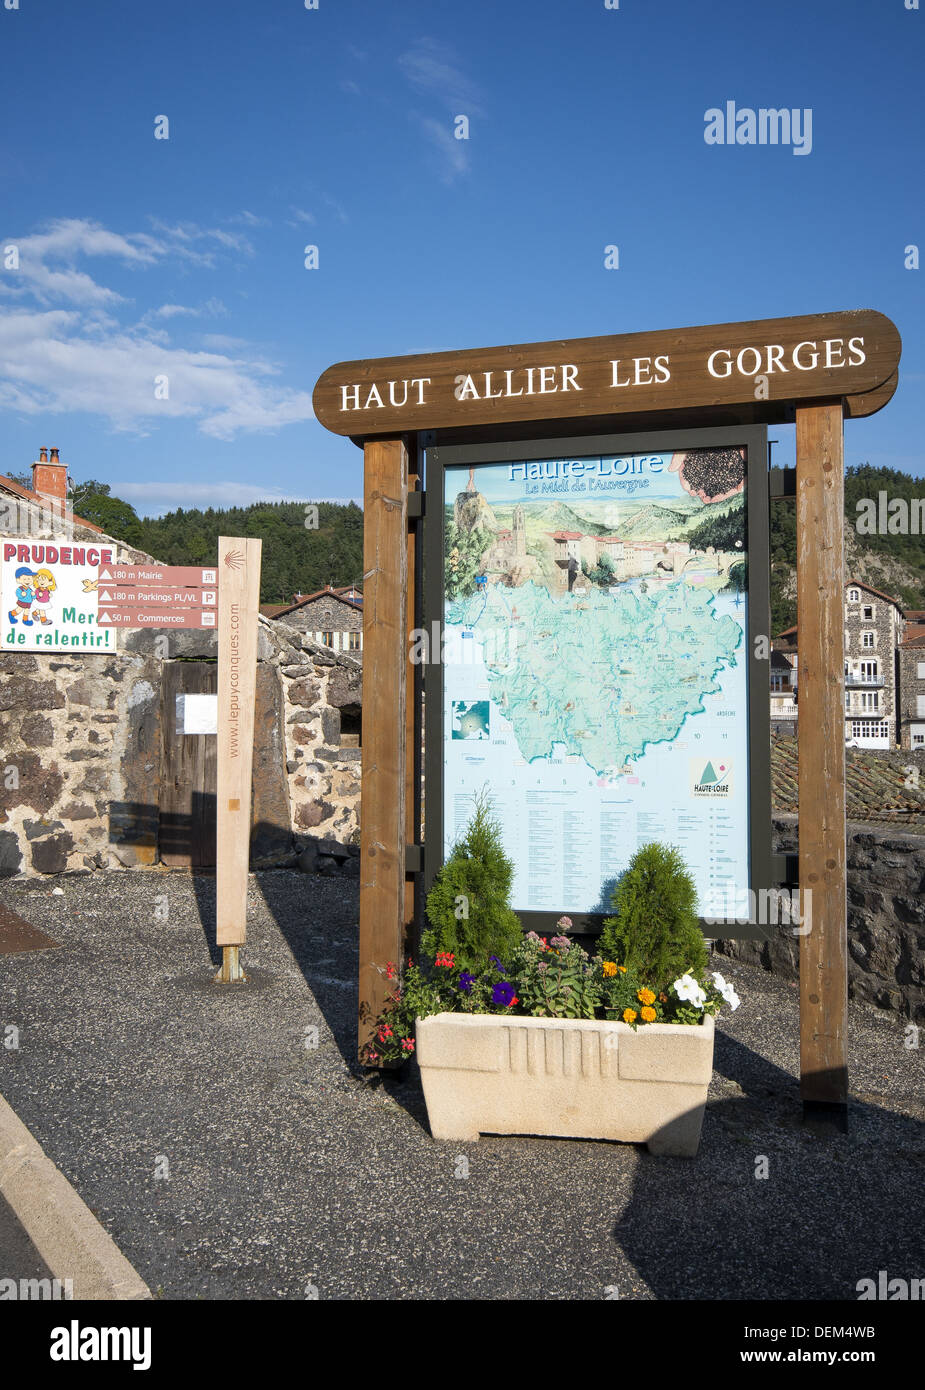 Information board on the Haut Allier Les Gorges in St-Privat-d'Allier on the GR65 route, The way of St James, France - Stock Image